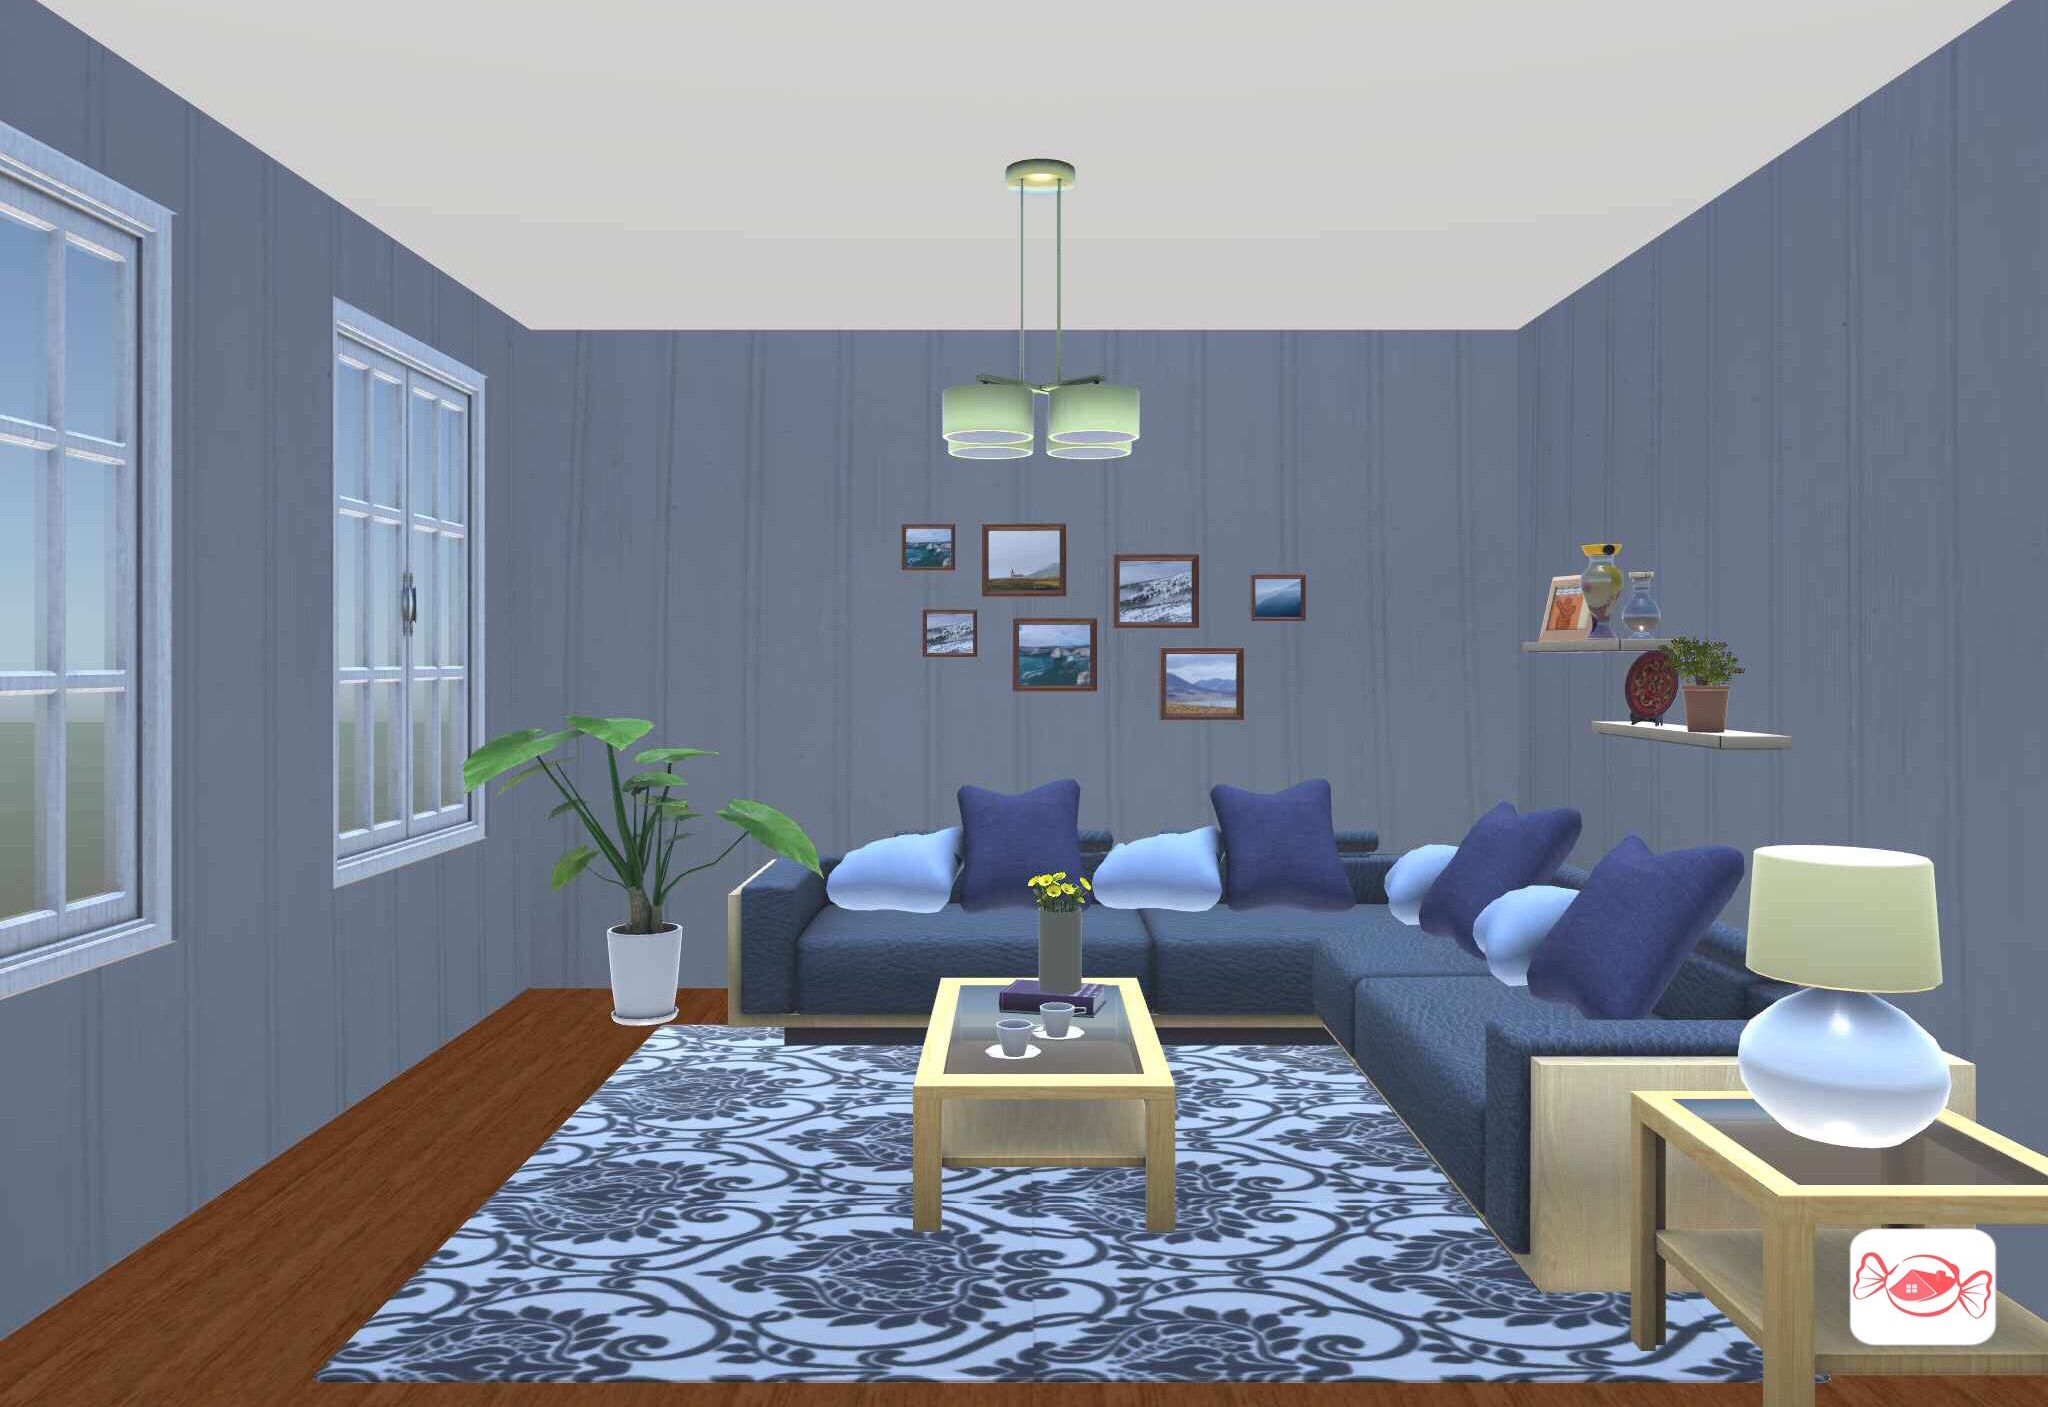 Created with home sweet home 3d app https tinyurl com homesweethome3d